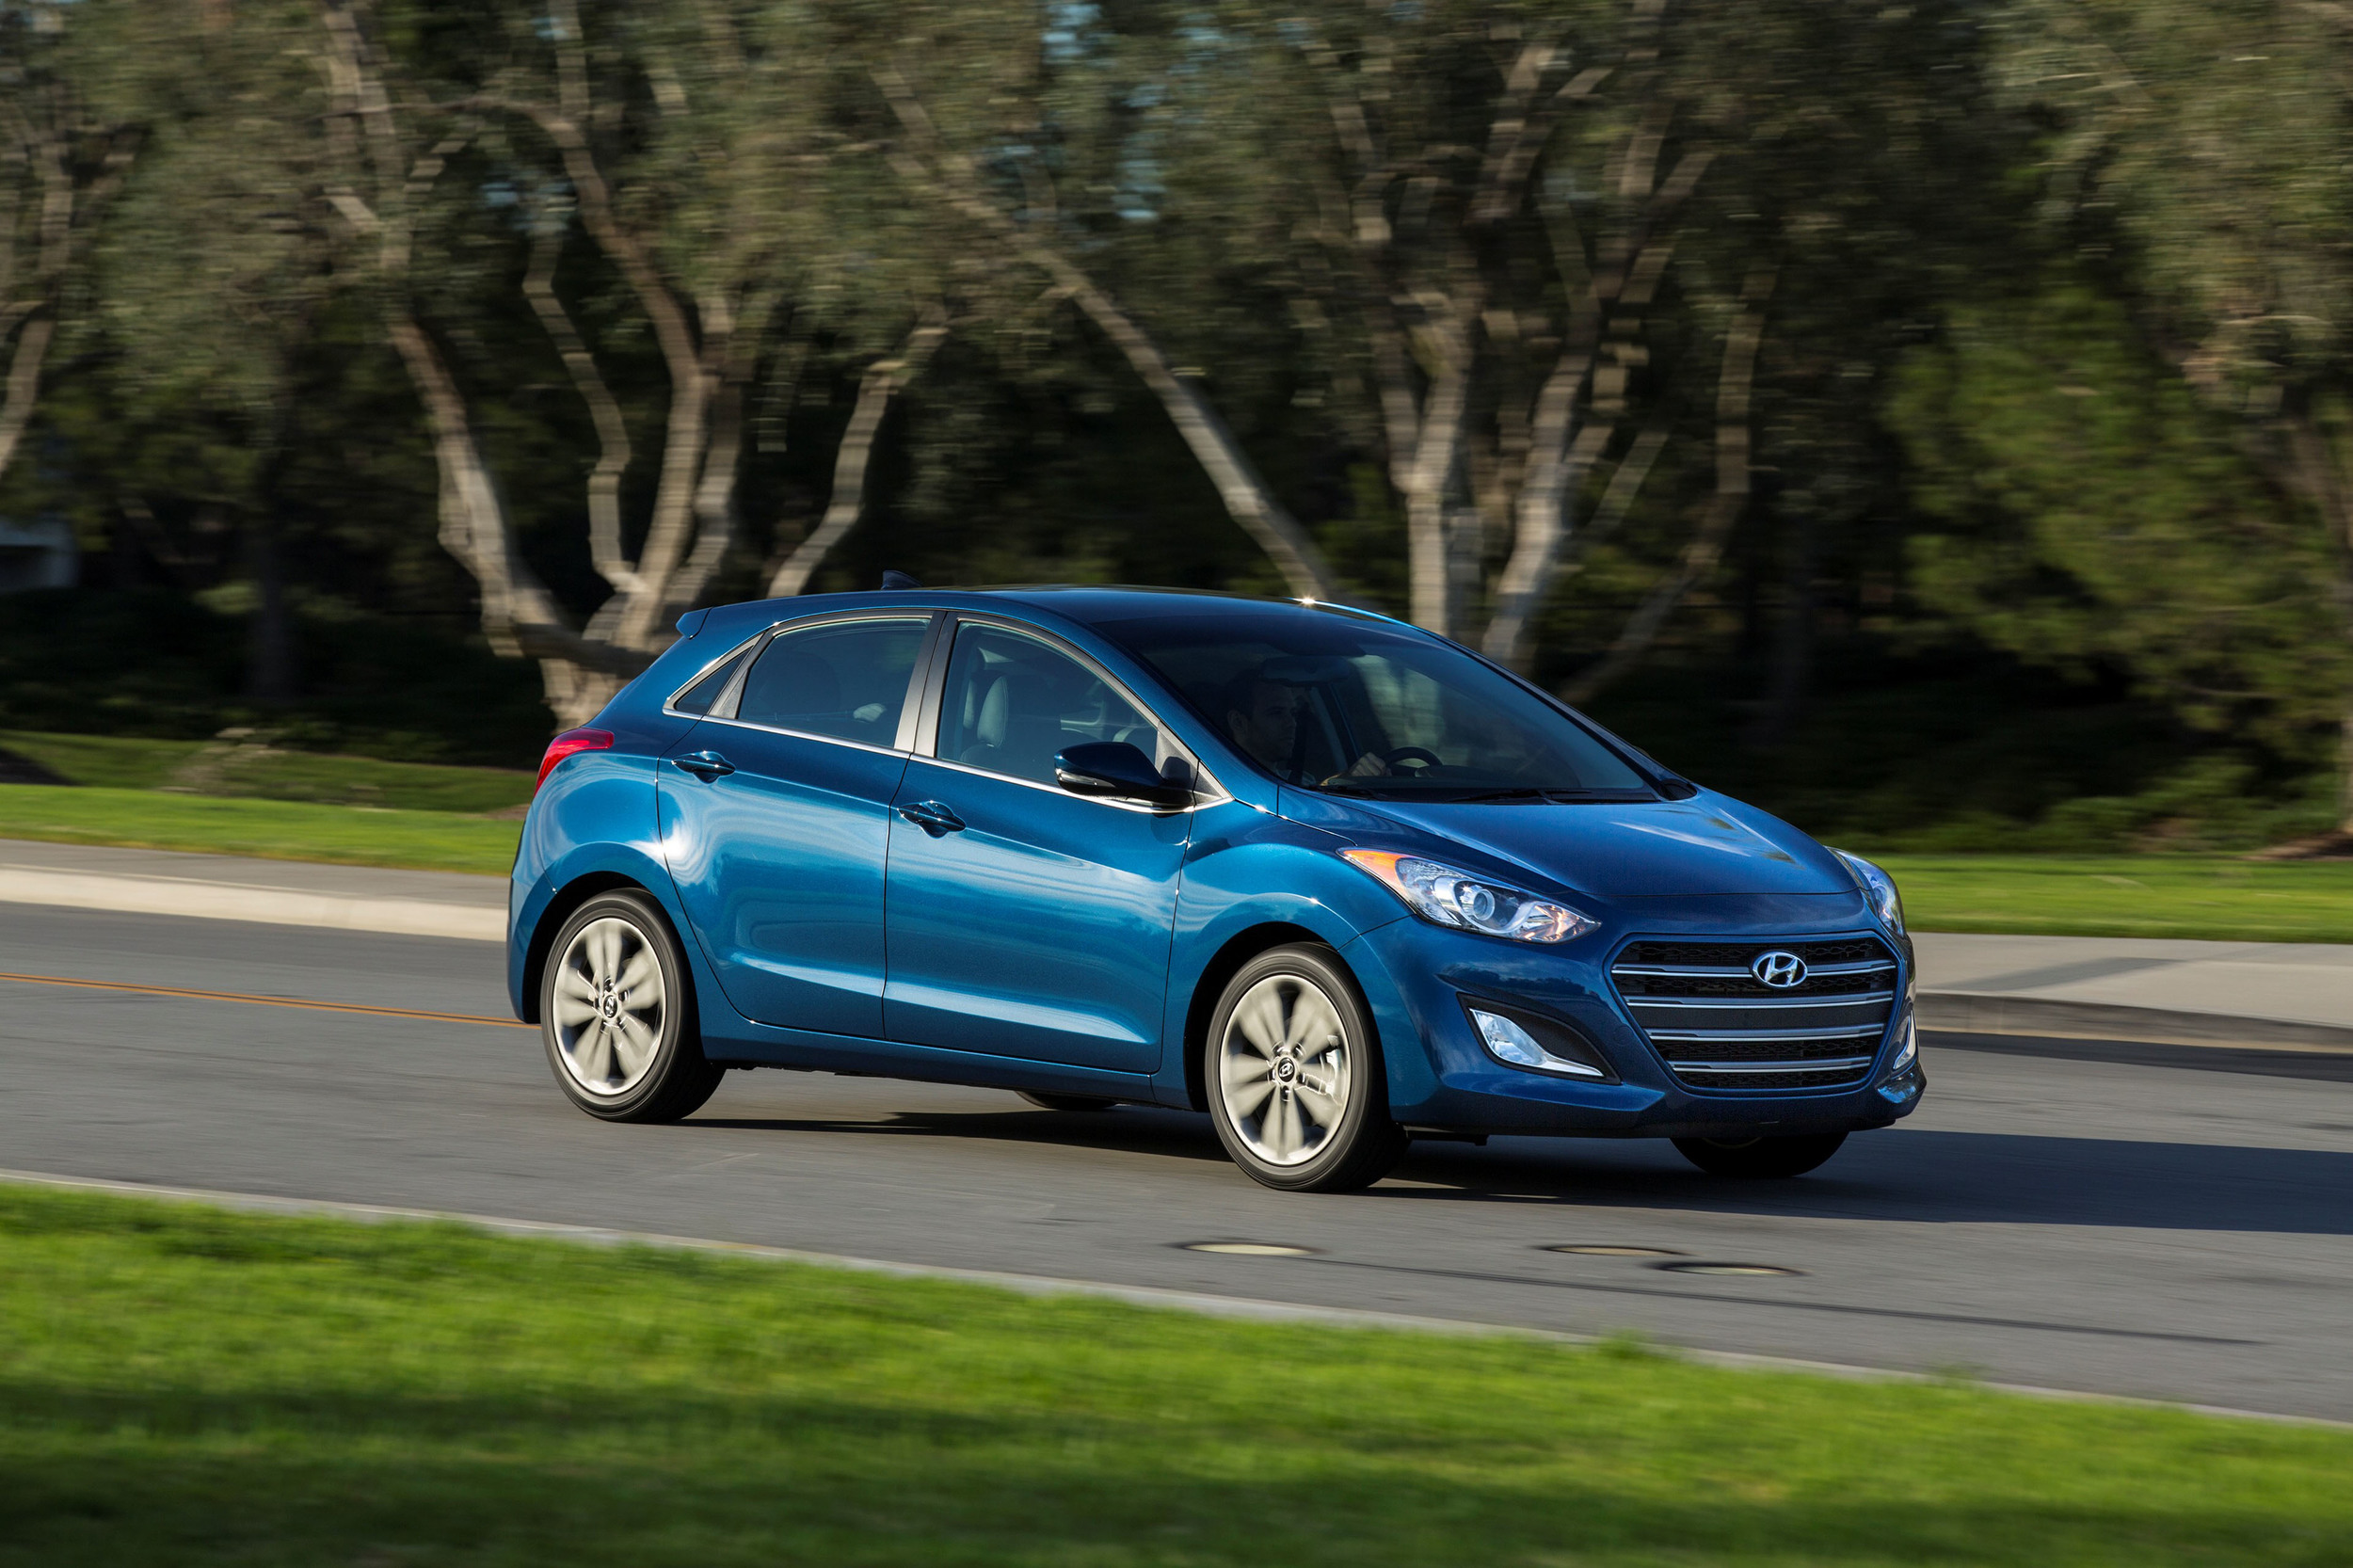 hyundai limited at sport out stand in elantra slip blog published september